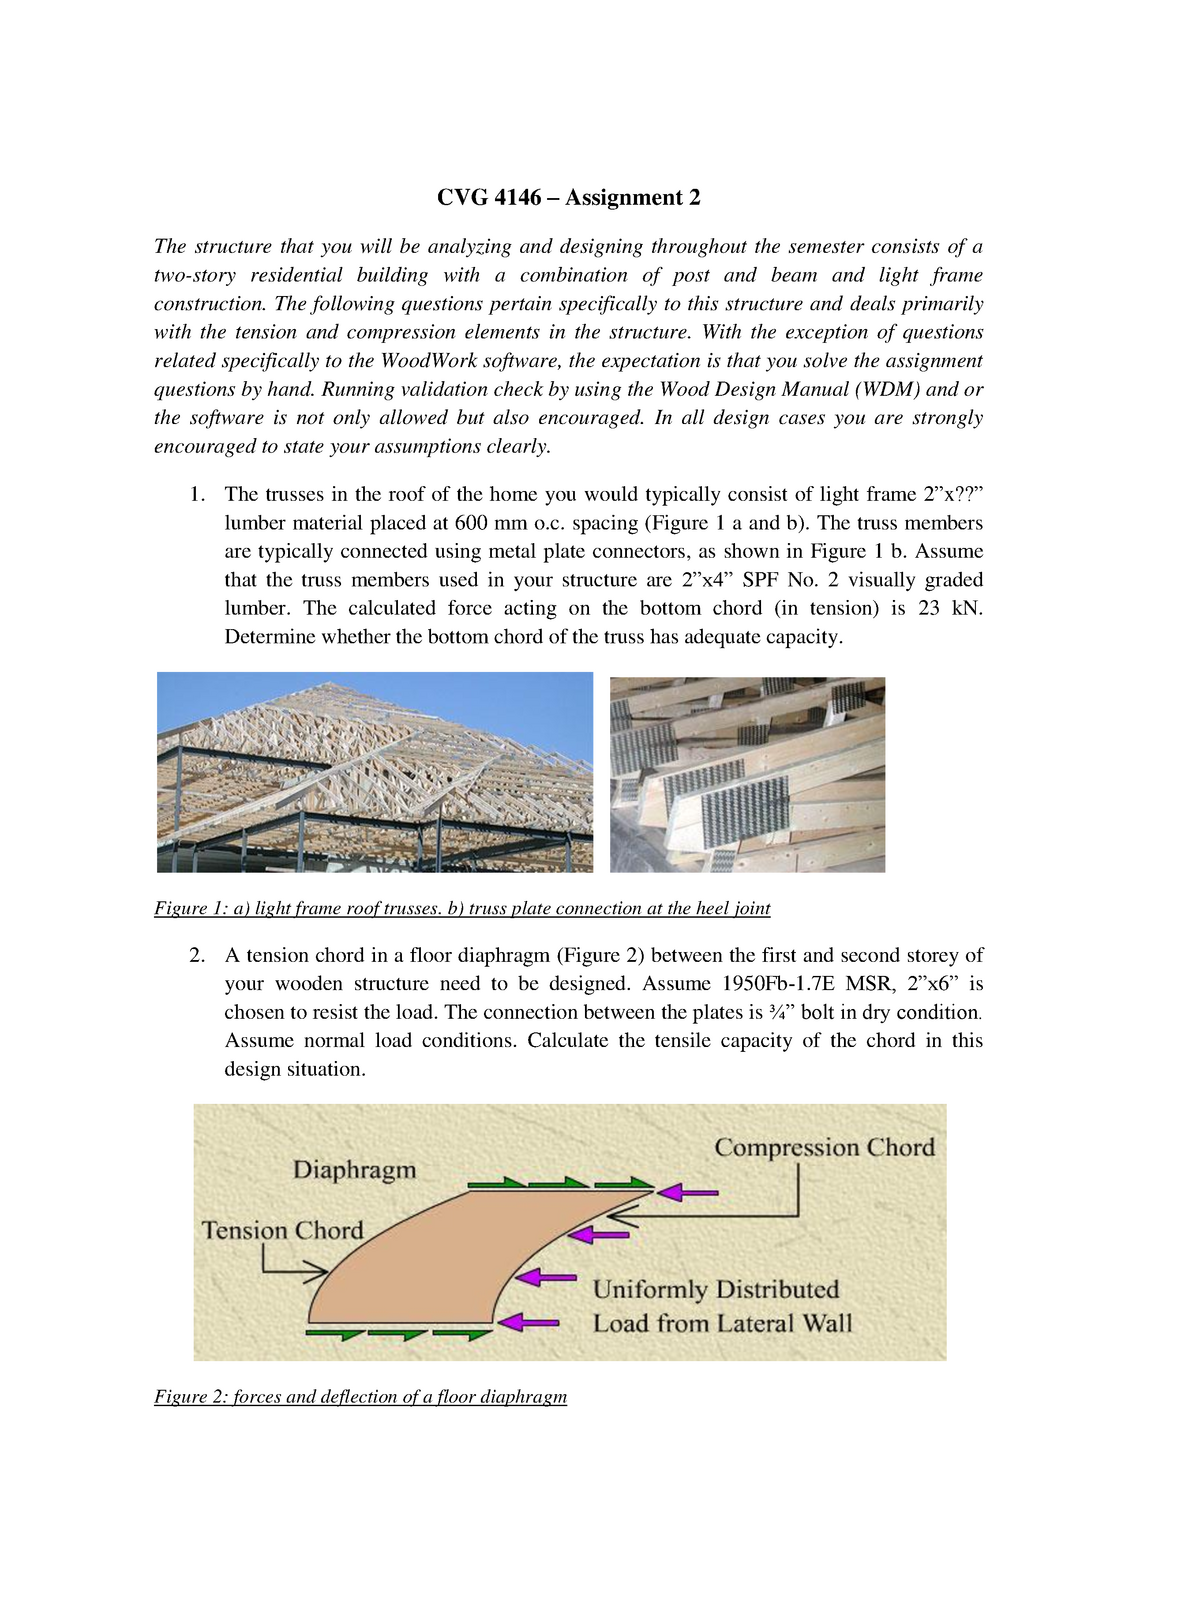 Assignment 2 - solutions - CVG4146: Structural Design in Timber